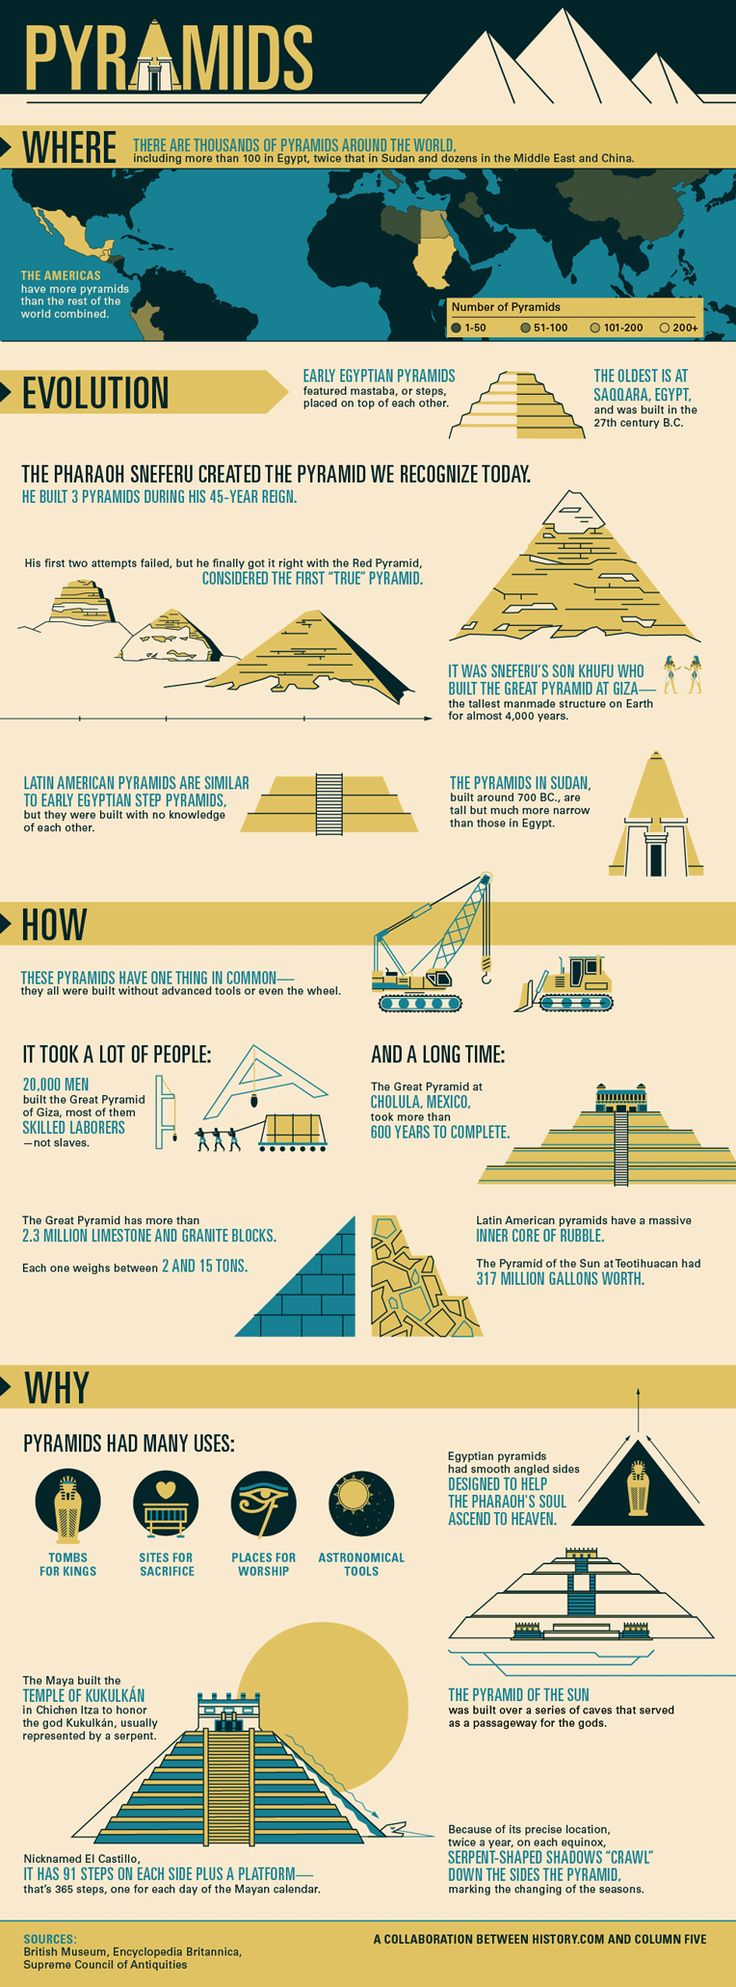 Egyptian Pyramids Built to Last from W3